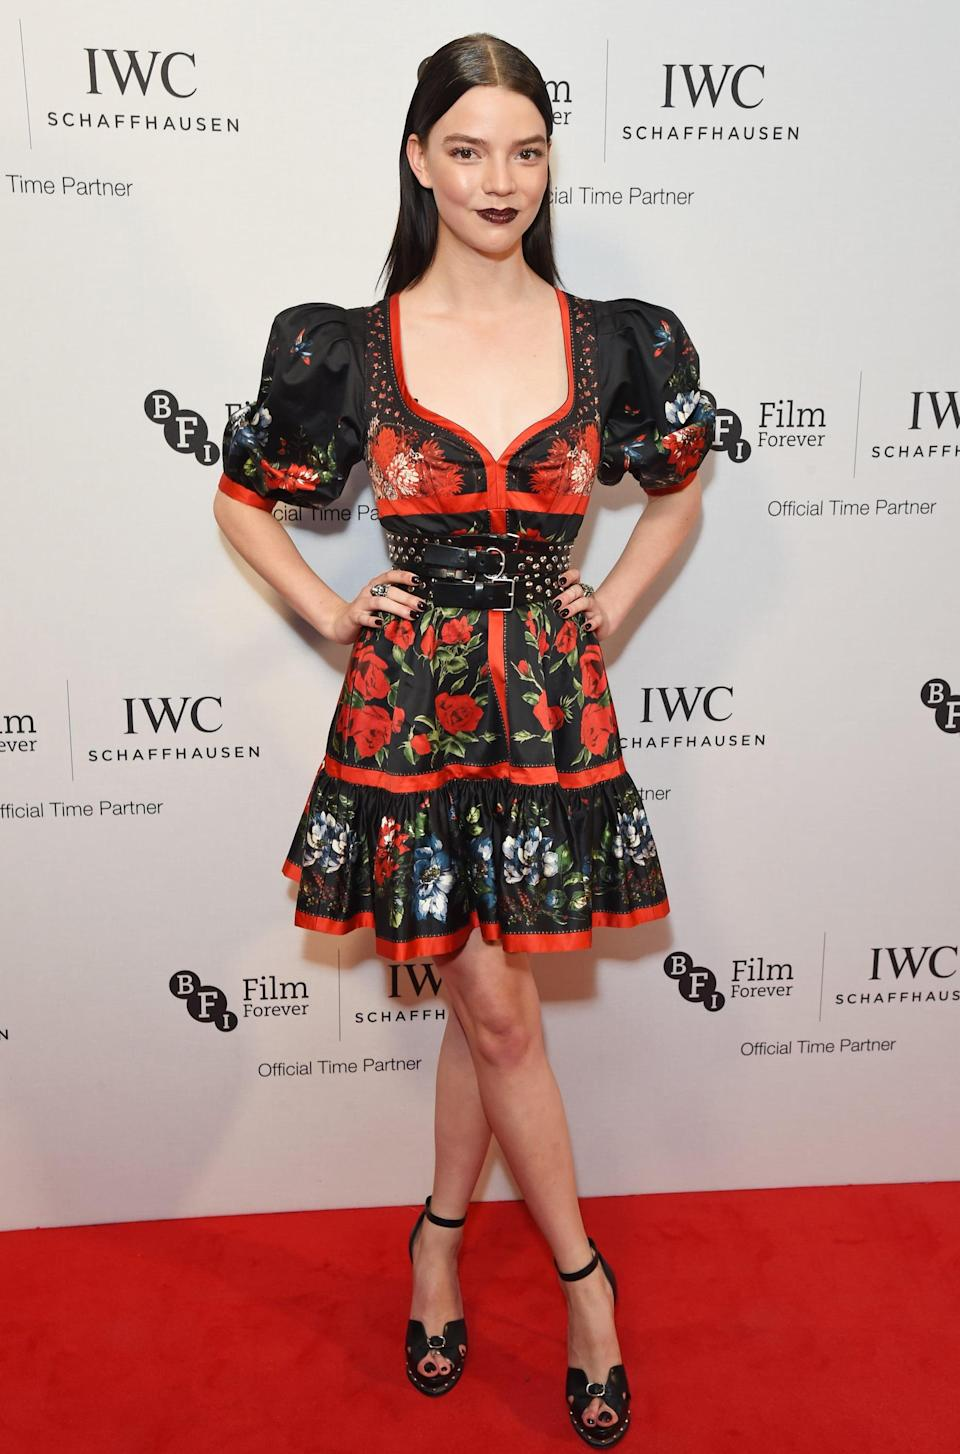 "<p>Anya wore an Alexander McQueen dress that made her feel like a <a href=""https://www.instagram.com/p/BLLk_poDBDu/"" class=""link rapid-noclick-resp"" rel=""nofollow noopener"" target=""_blank"" data-ylk=""slk:&quot;Spanish rose&quot;"">""Spanish rose""</a>.</p>"